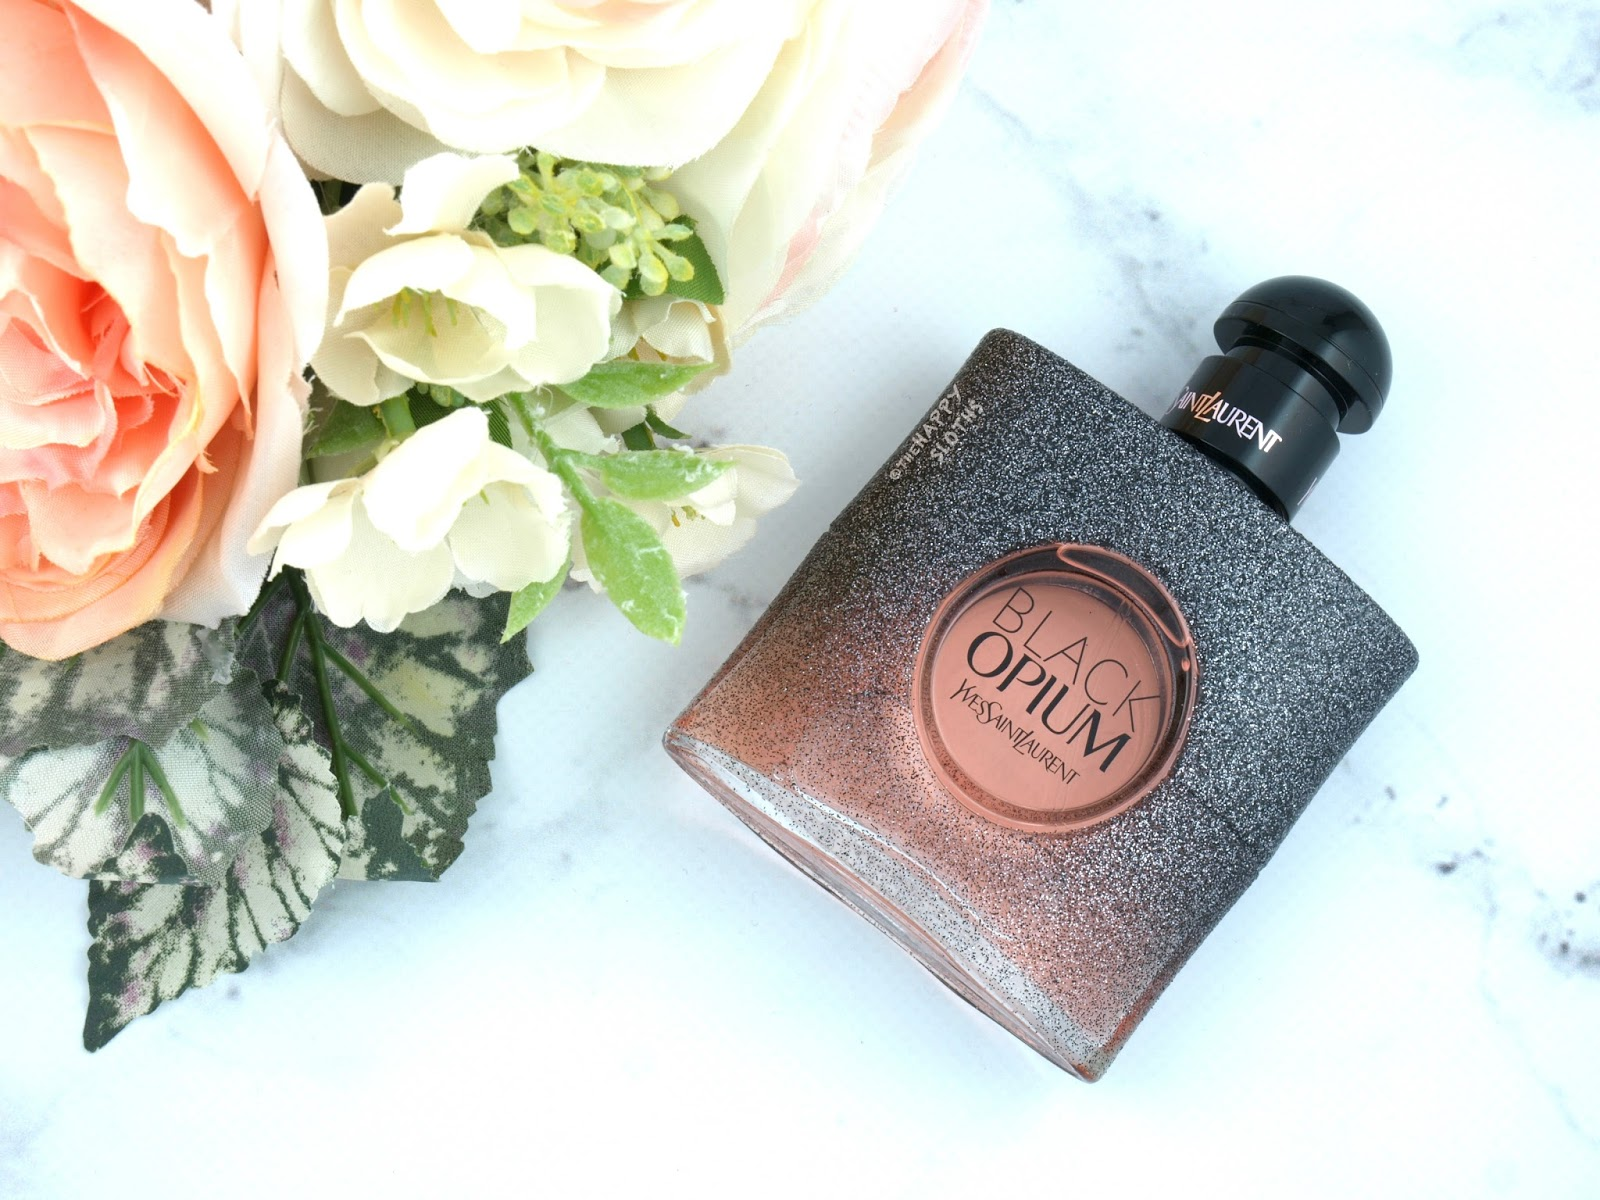 Yves Saint Laurent Black Opium Floral Shock Eau de Parfum: Review